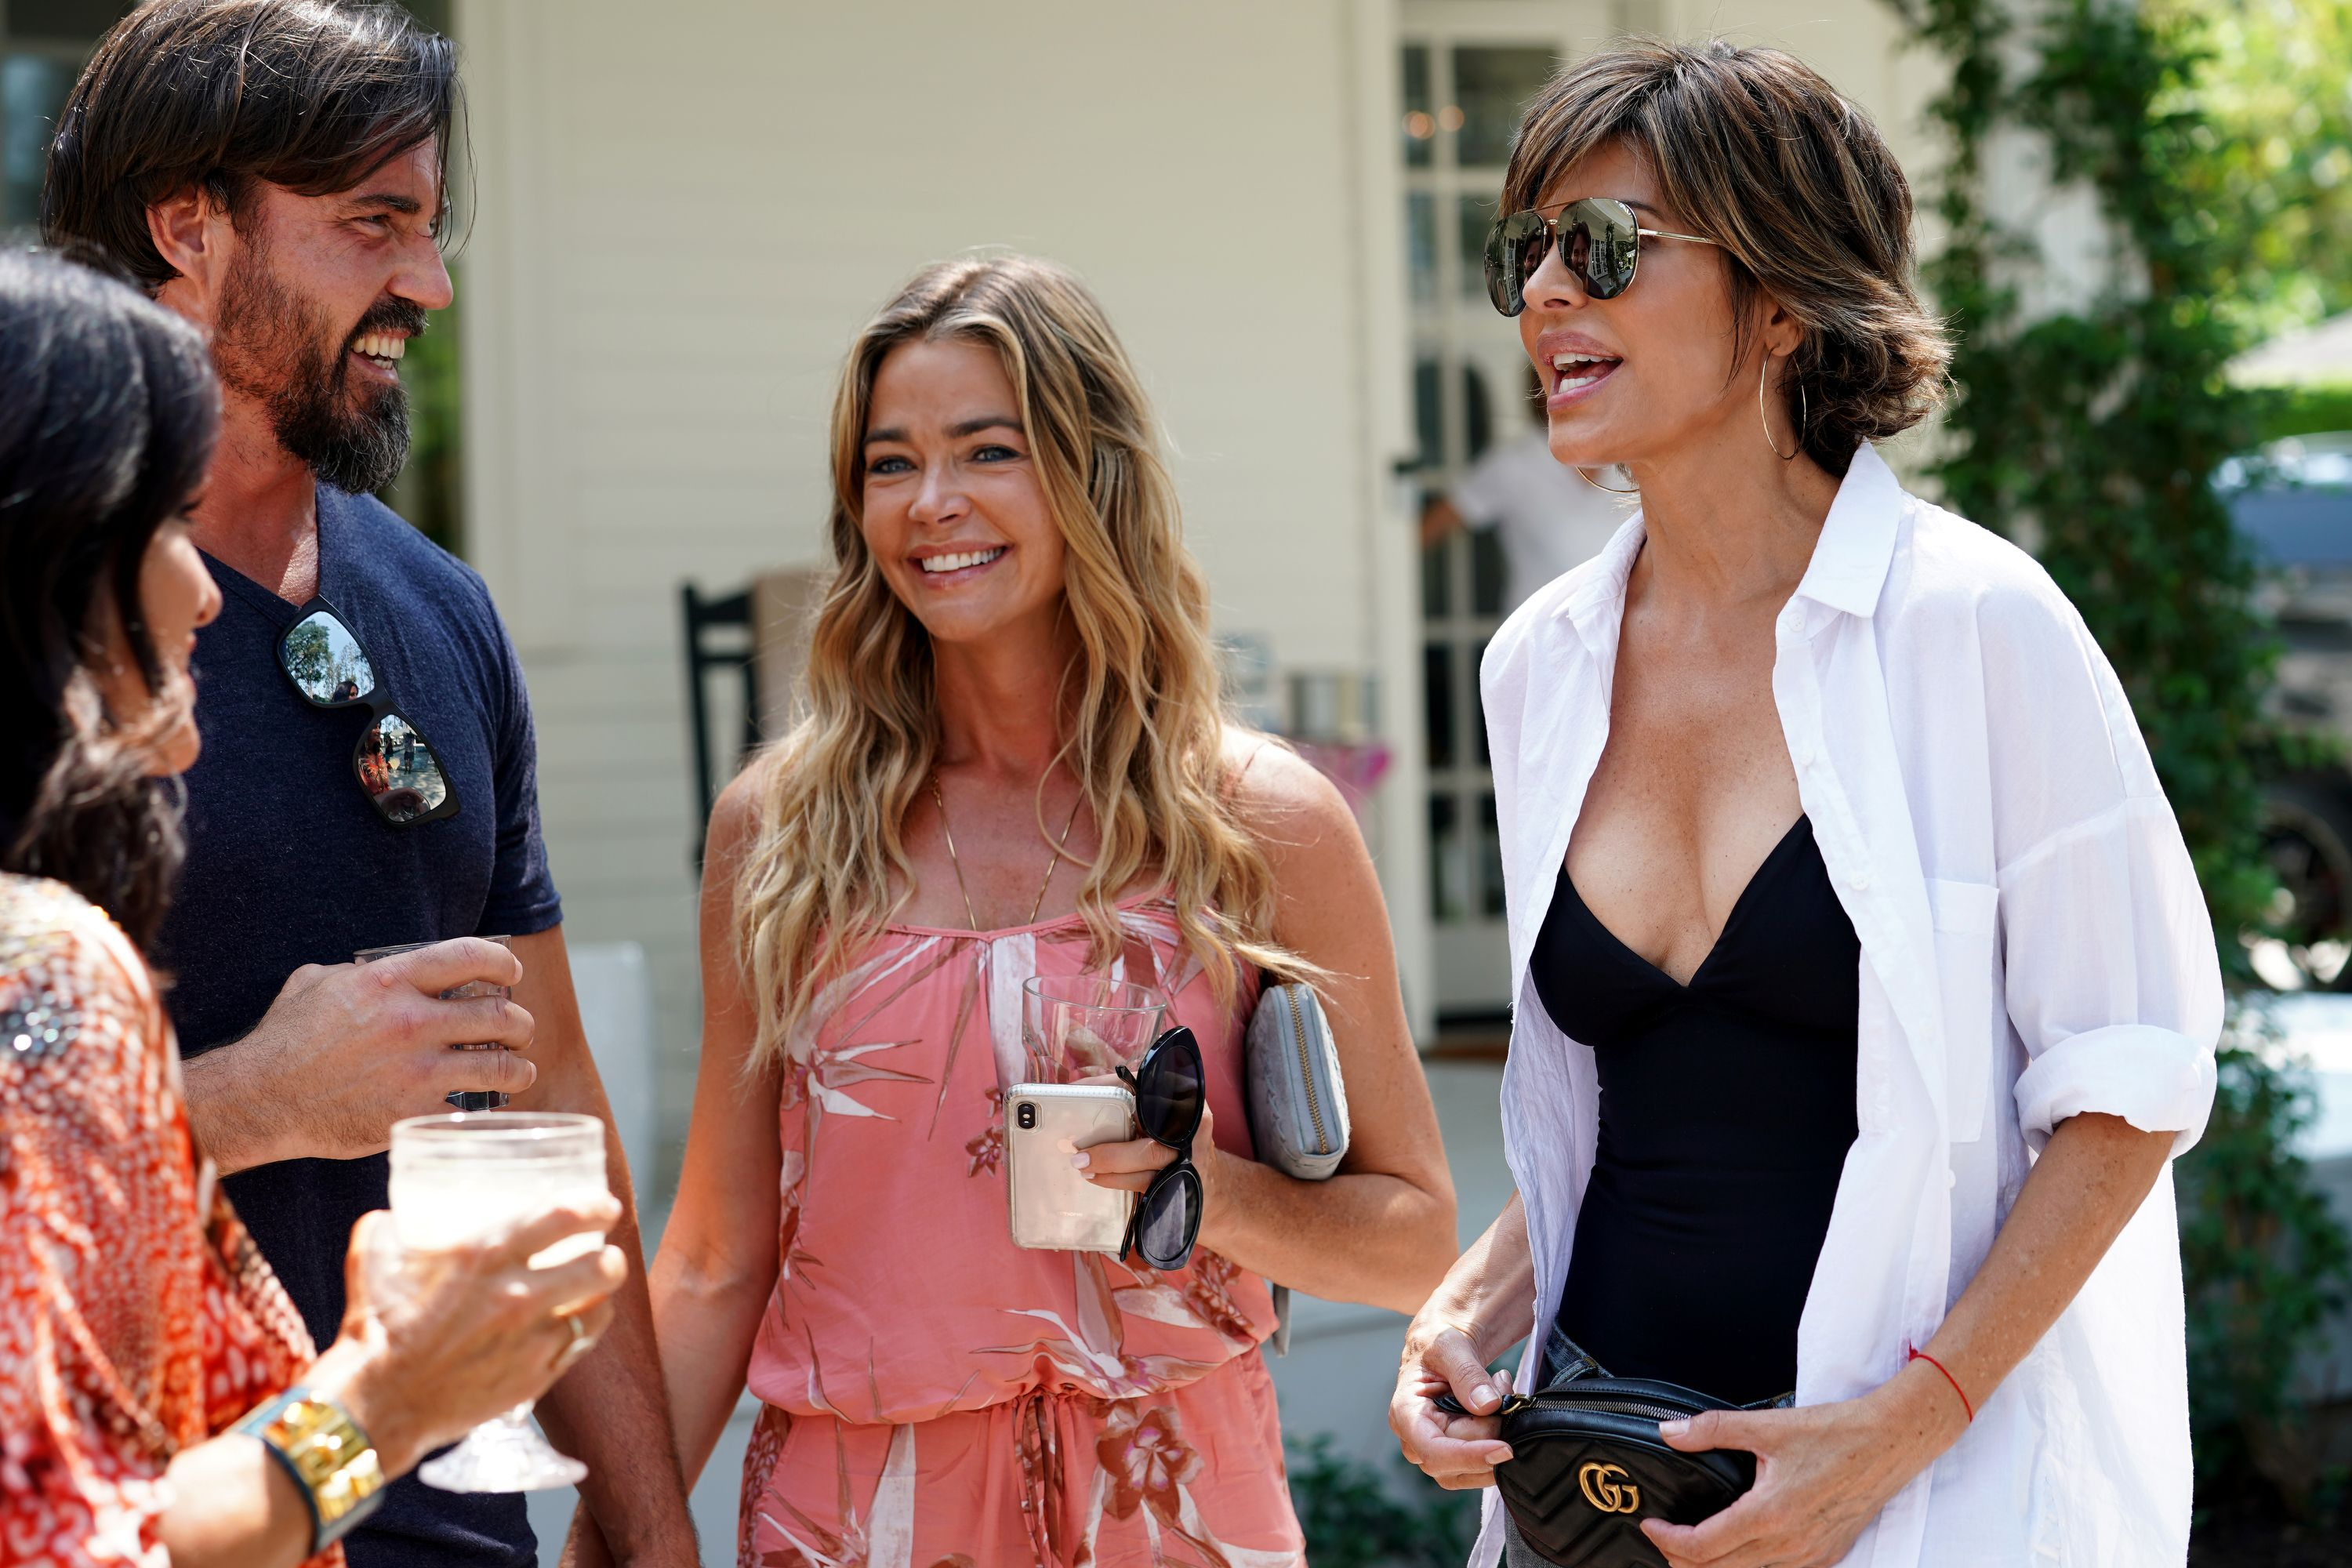 Denise Richards and Lisa Rinna